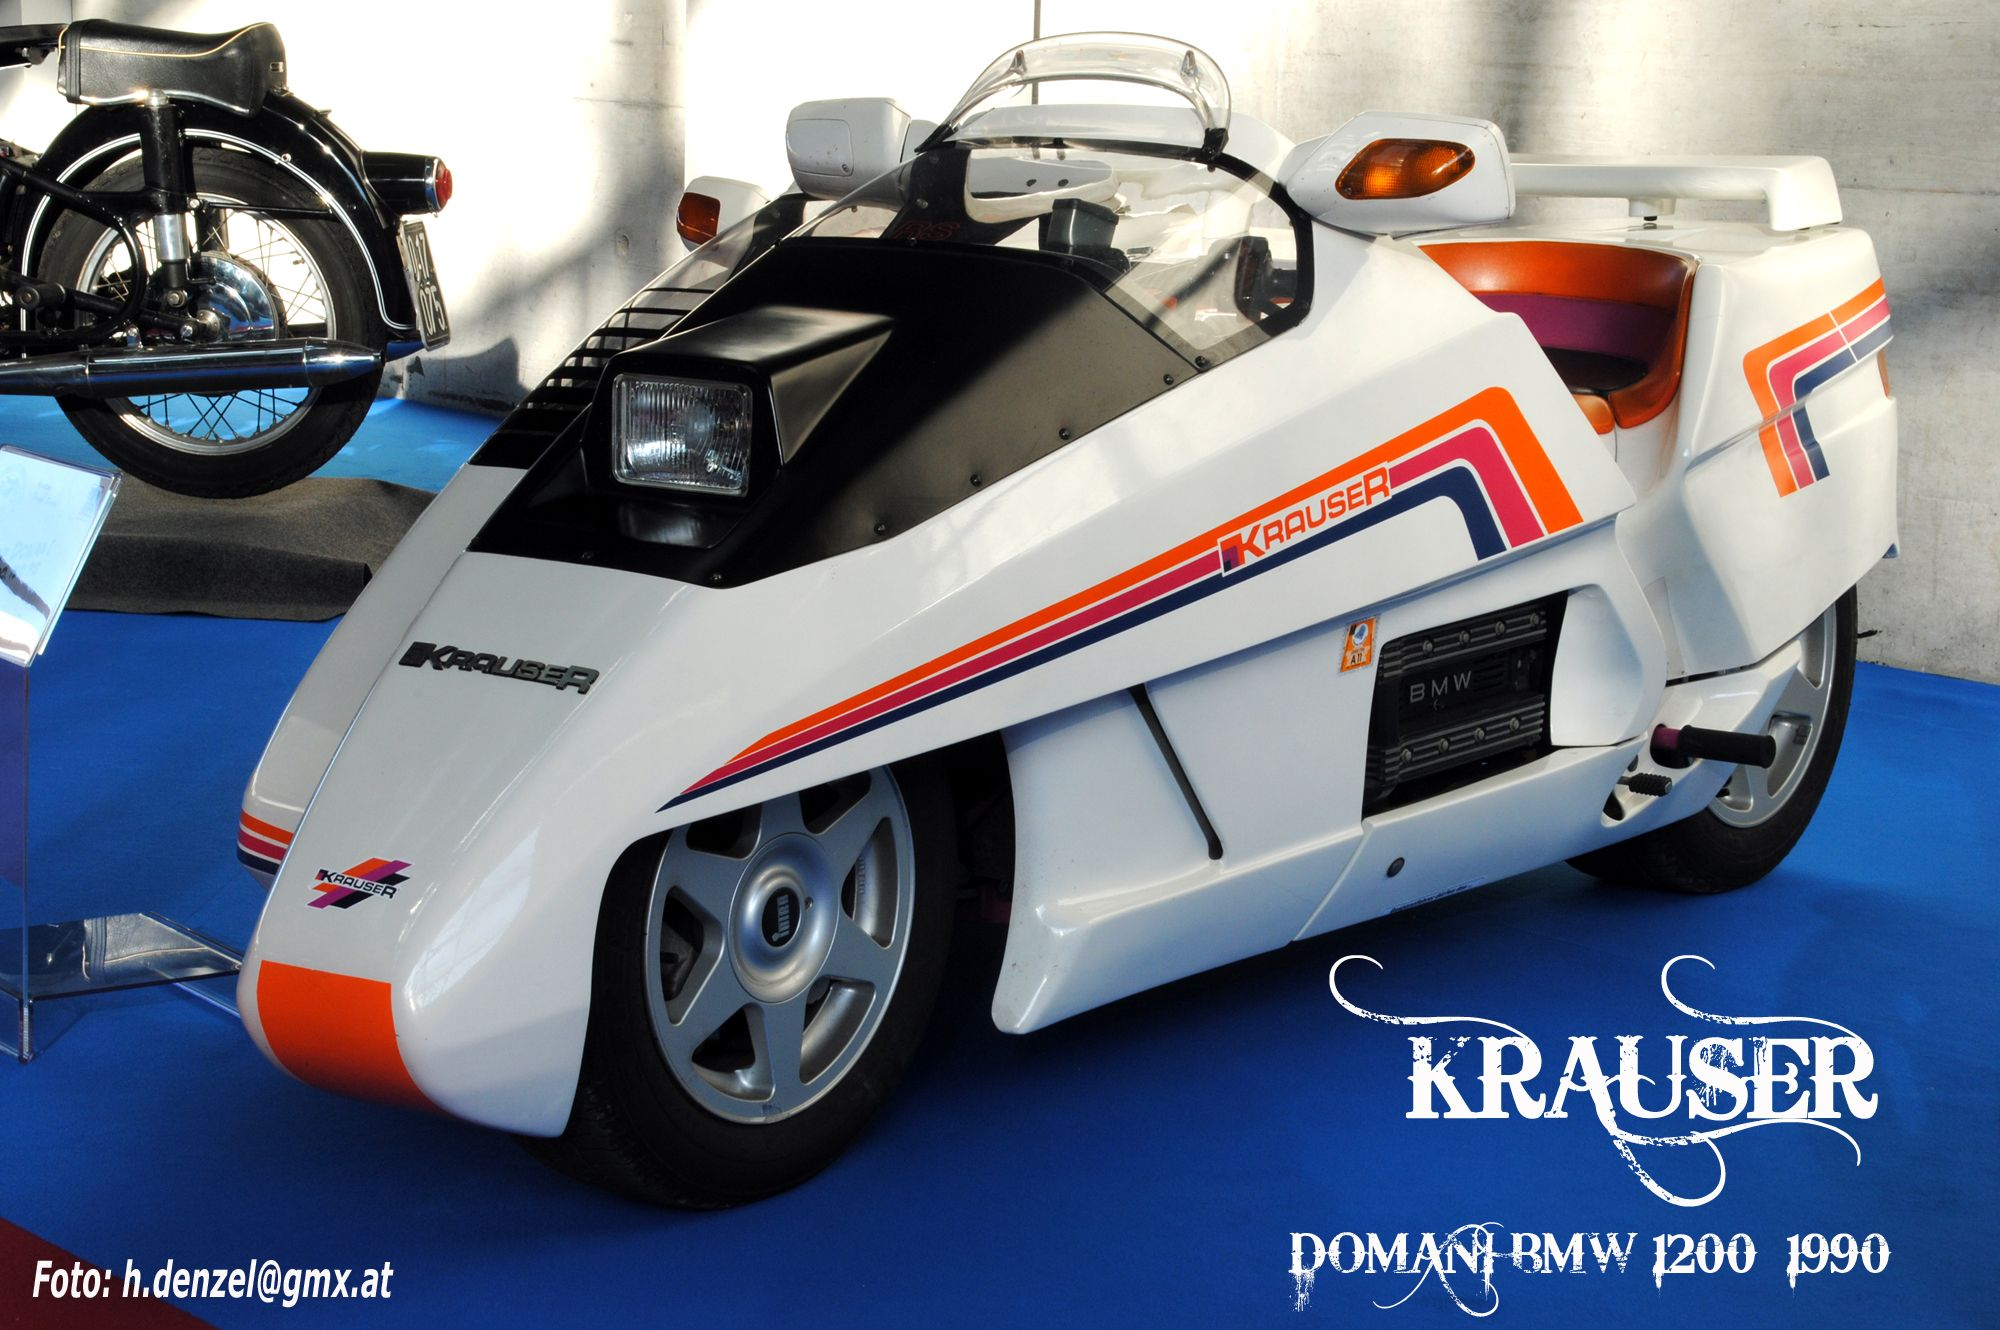 For Sale 65 Corsa Convertible Rolling Chassis California: Krauser Domani BMW 1200 1990